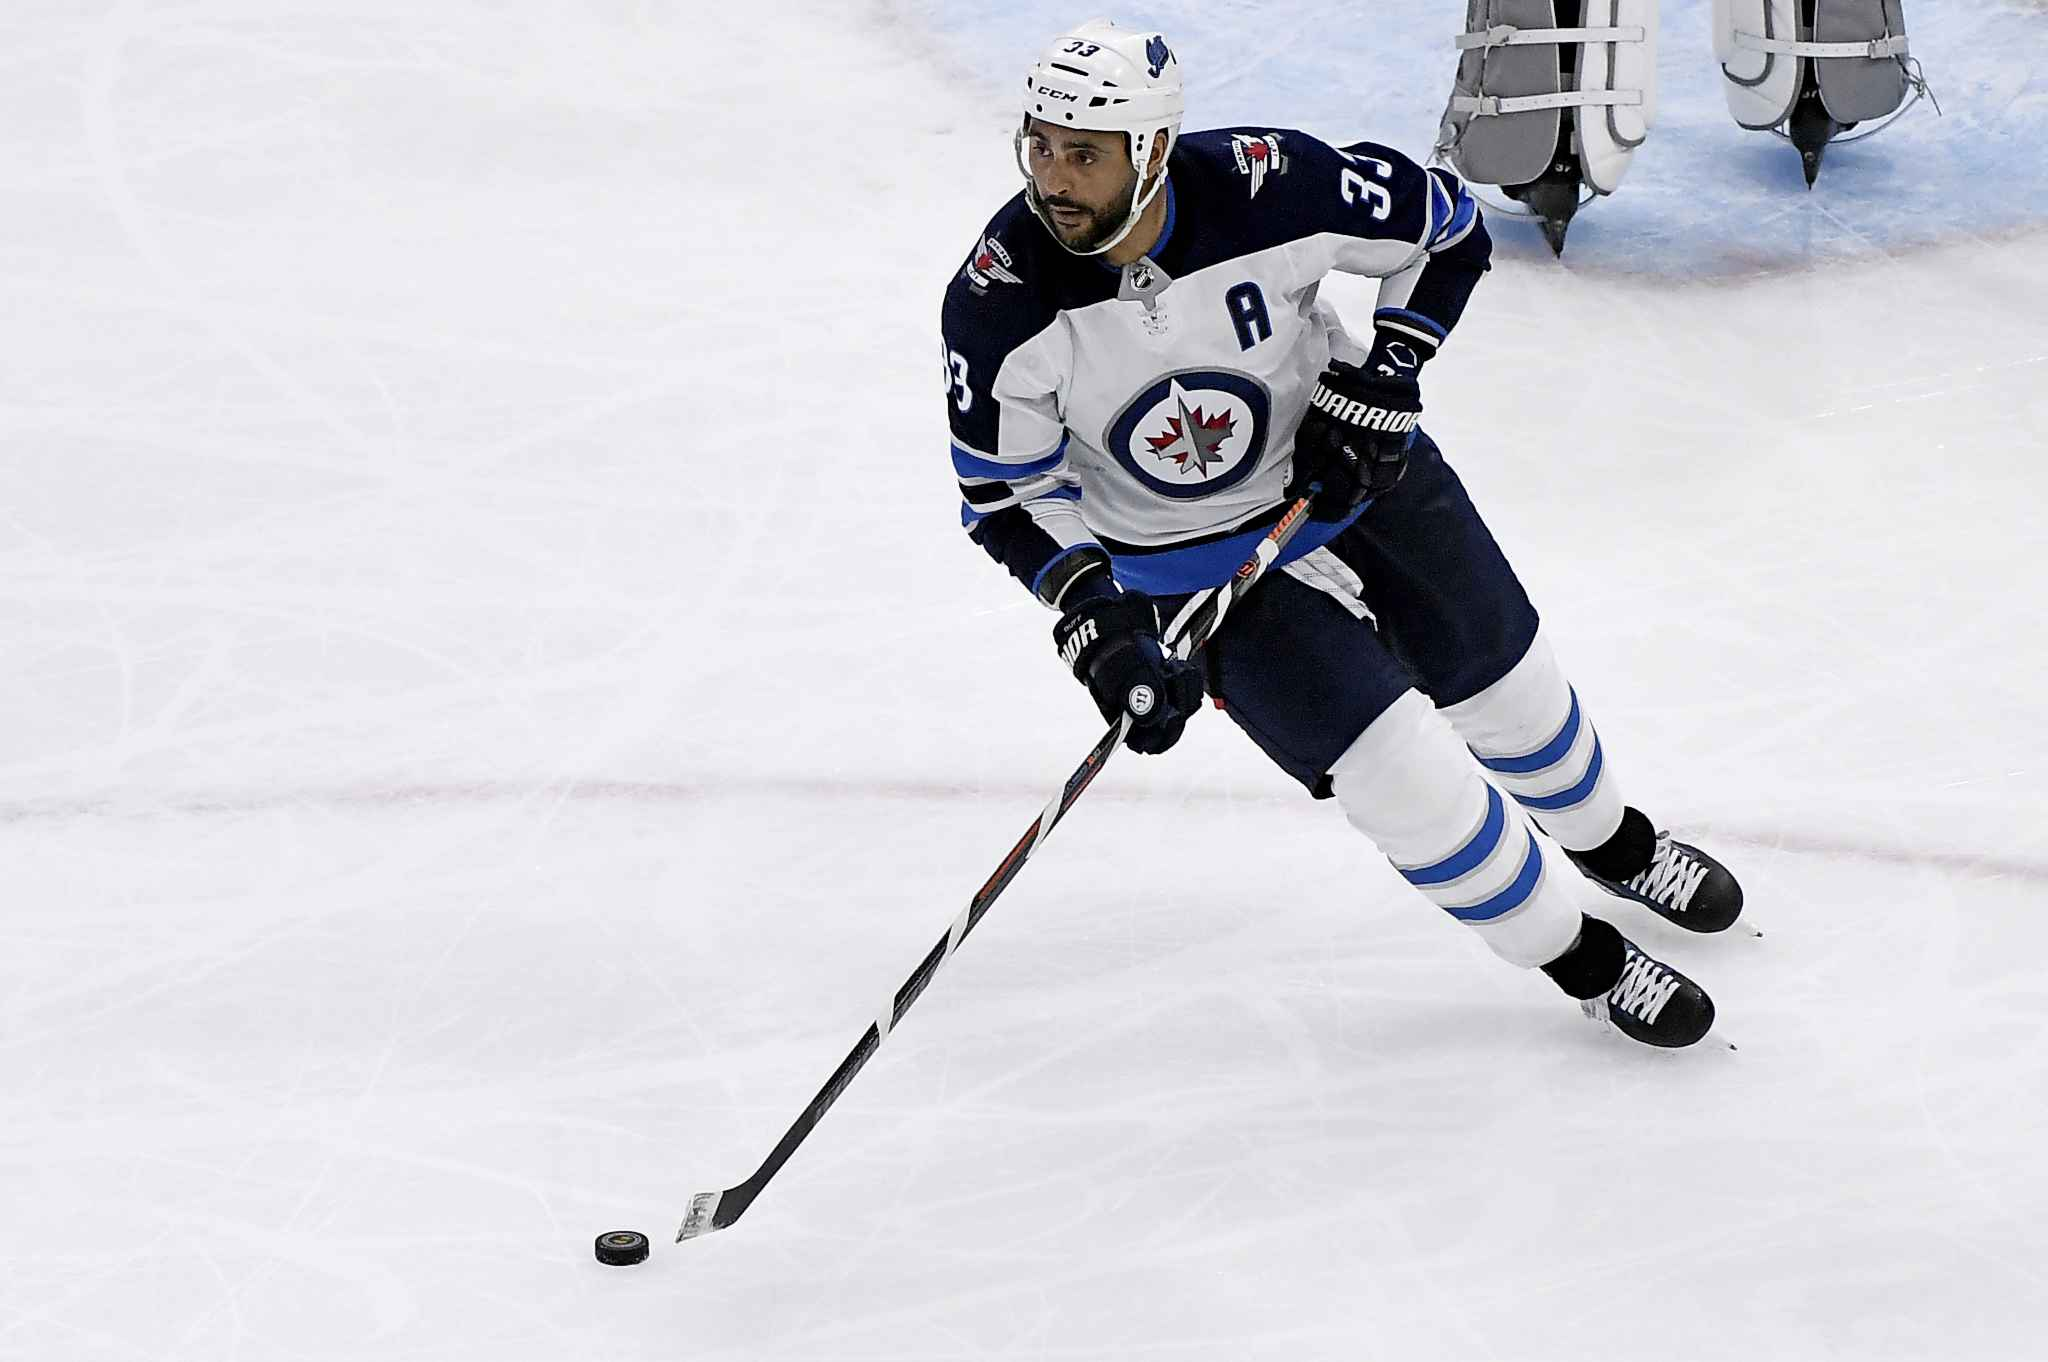 Winnipeg Jets defenseman Dustin Byfuglien (33) moves the puck during the second period of an NHL hockey game against the Chicago Blackhawks. (AP Photo/Matt Marton)